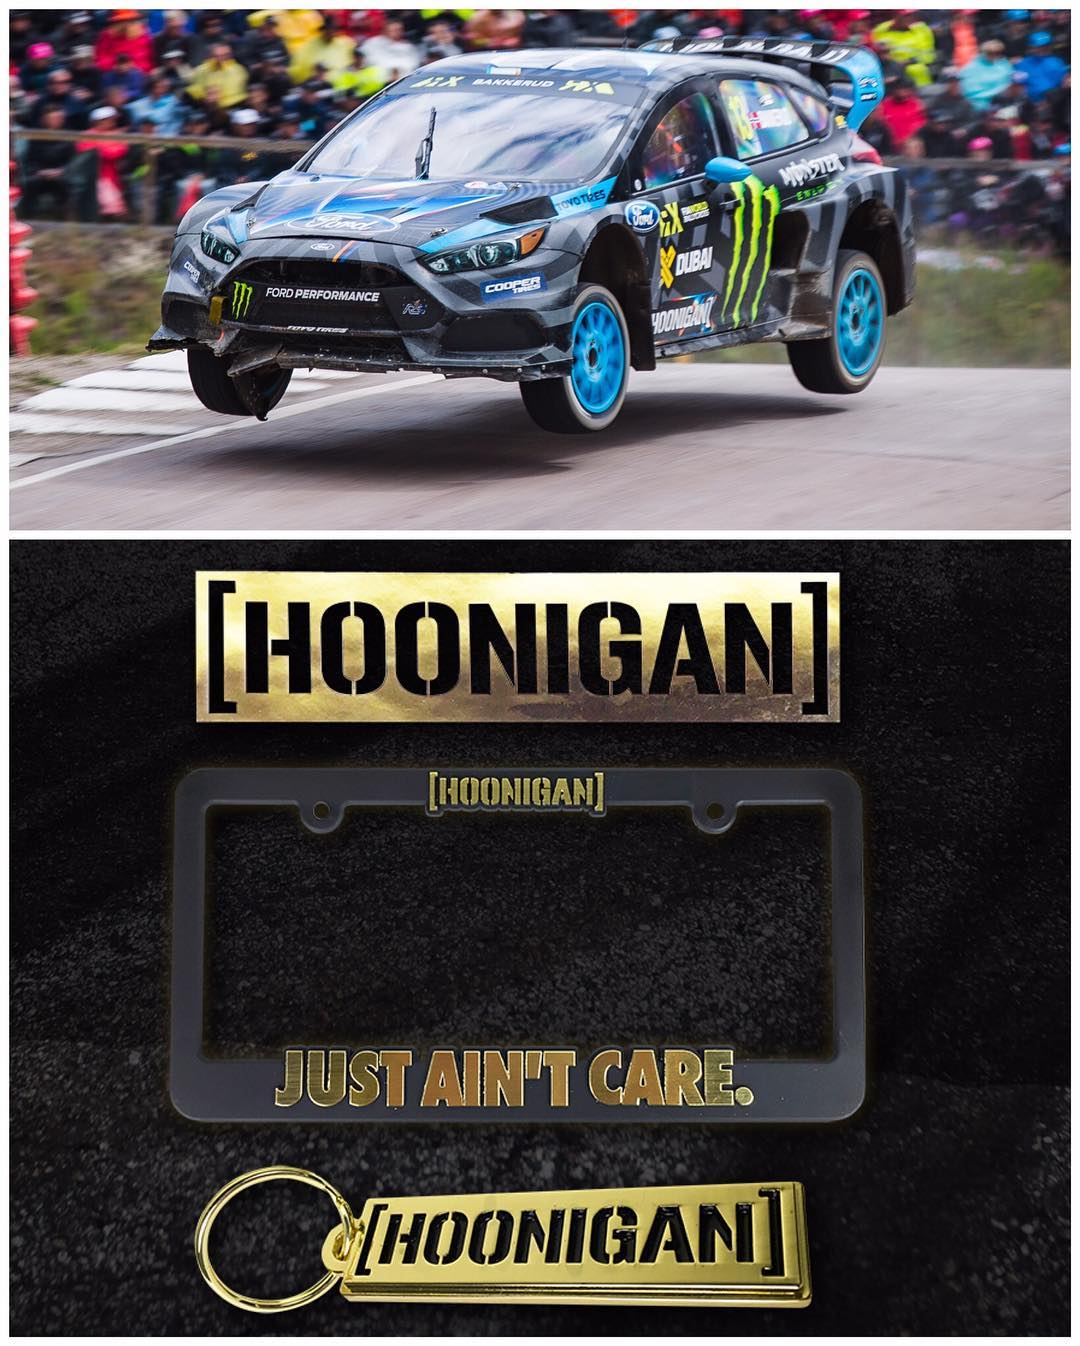 It's Hoonigan #goldstickertime! Because when we win, you win. And because @AndreasBakkerud just won #HoljesRX, that means anything you buy at #HooniganDOTcom over the next 48 hours comes with a free gold Hoonigan sticker! And a special gold license...